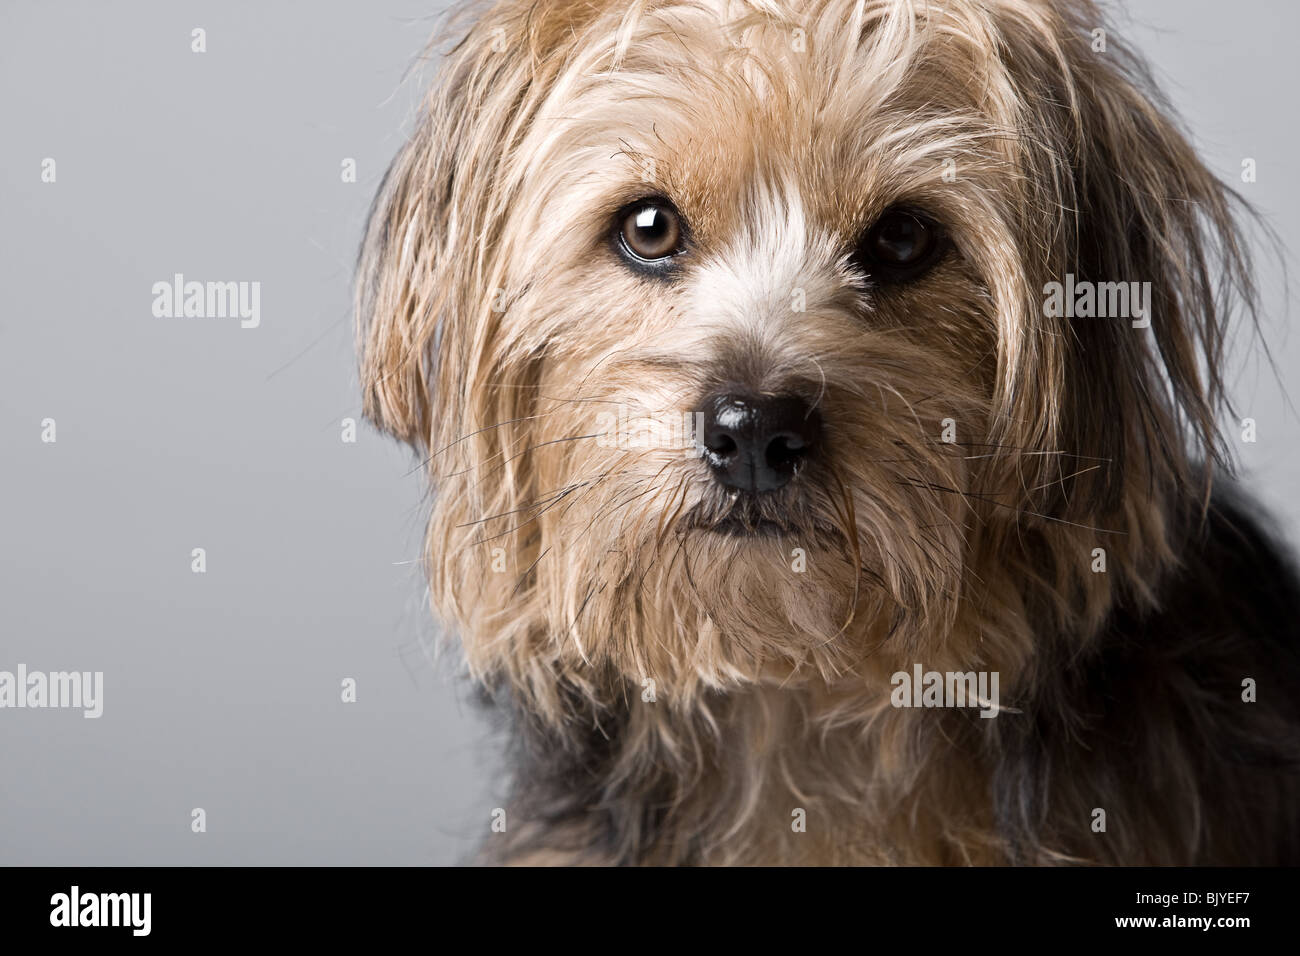 Beautiful Shot of a Cute Looking Dog - Stock Image